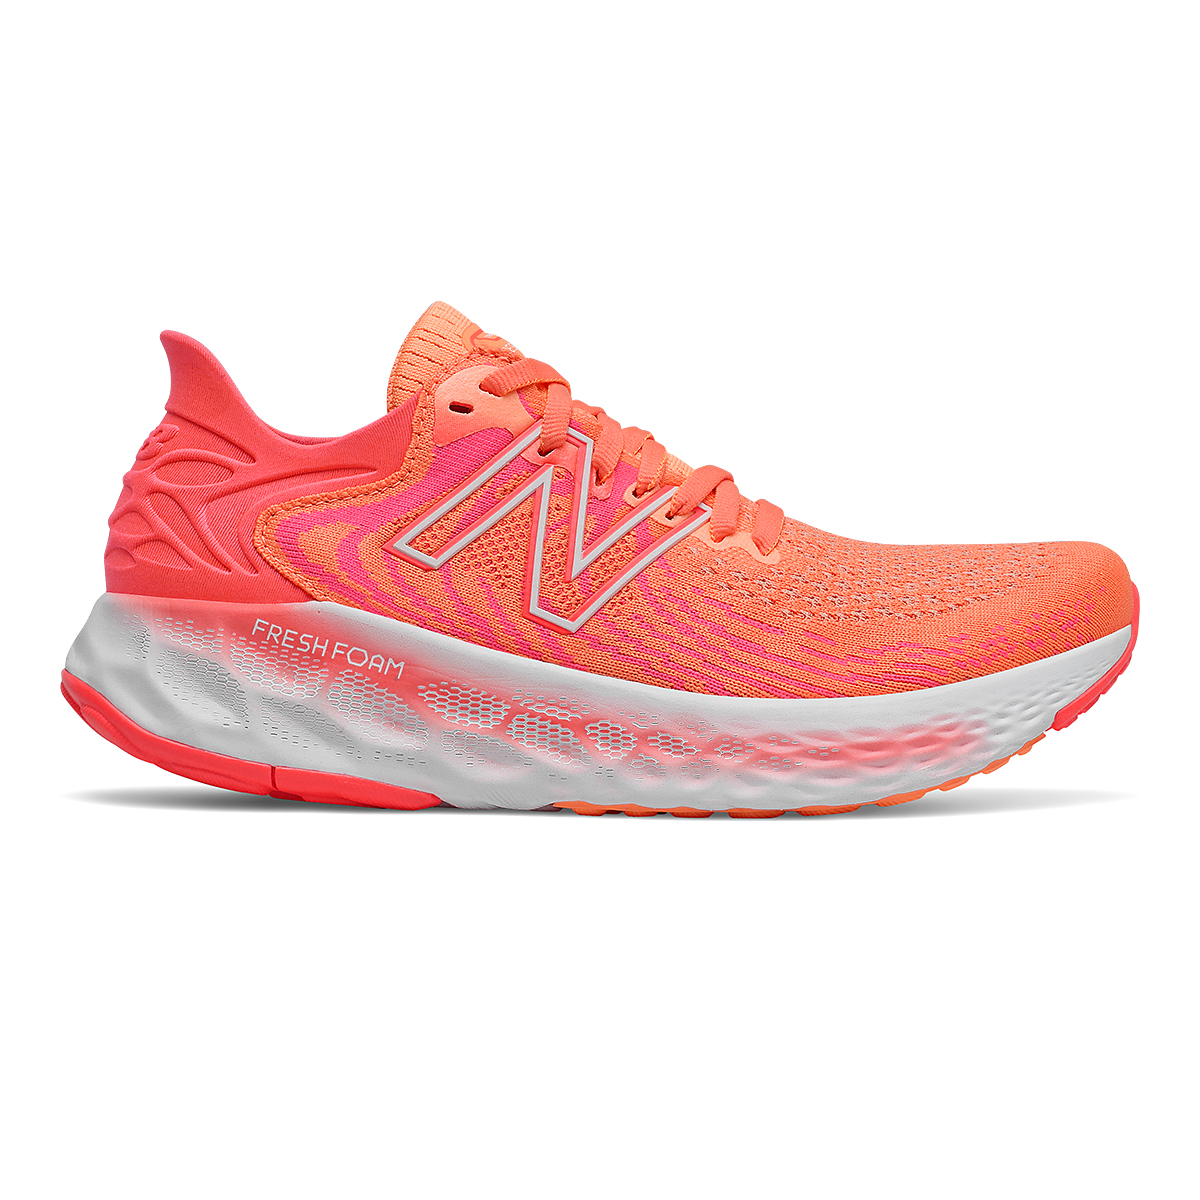 Women's New Balance 1080v11 Running Shoe - Color: Citrus Punch/Vivid Coral - Size: 5 - Width: Narrow, Citrus Punch/Vivid Coral, large, image 1